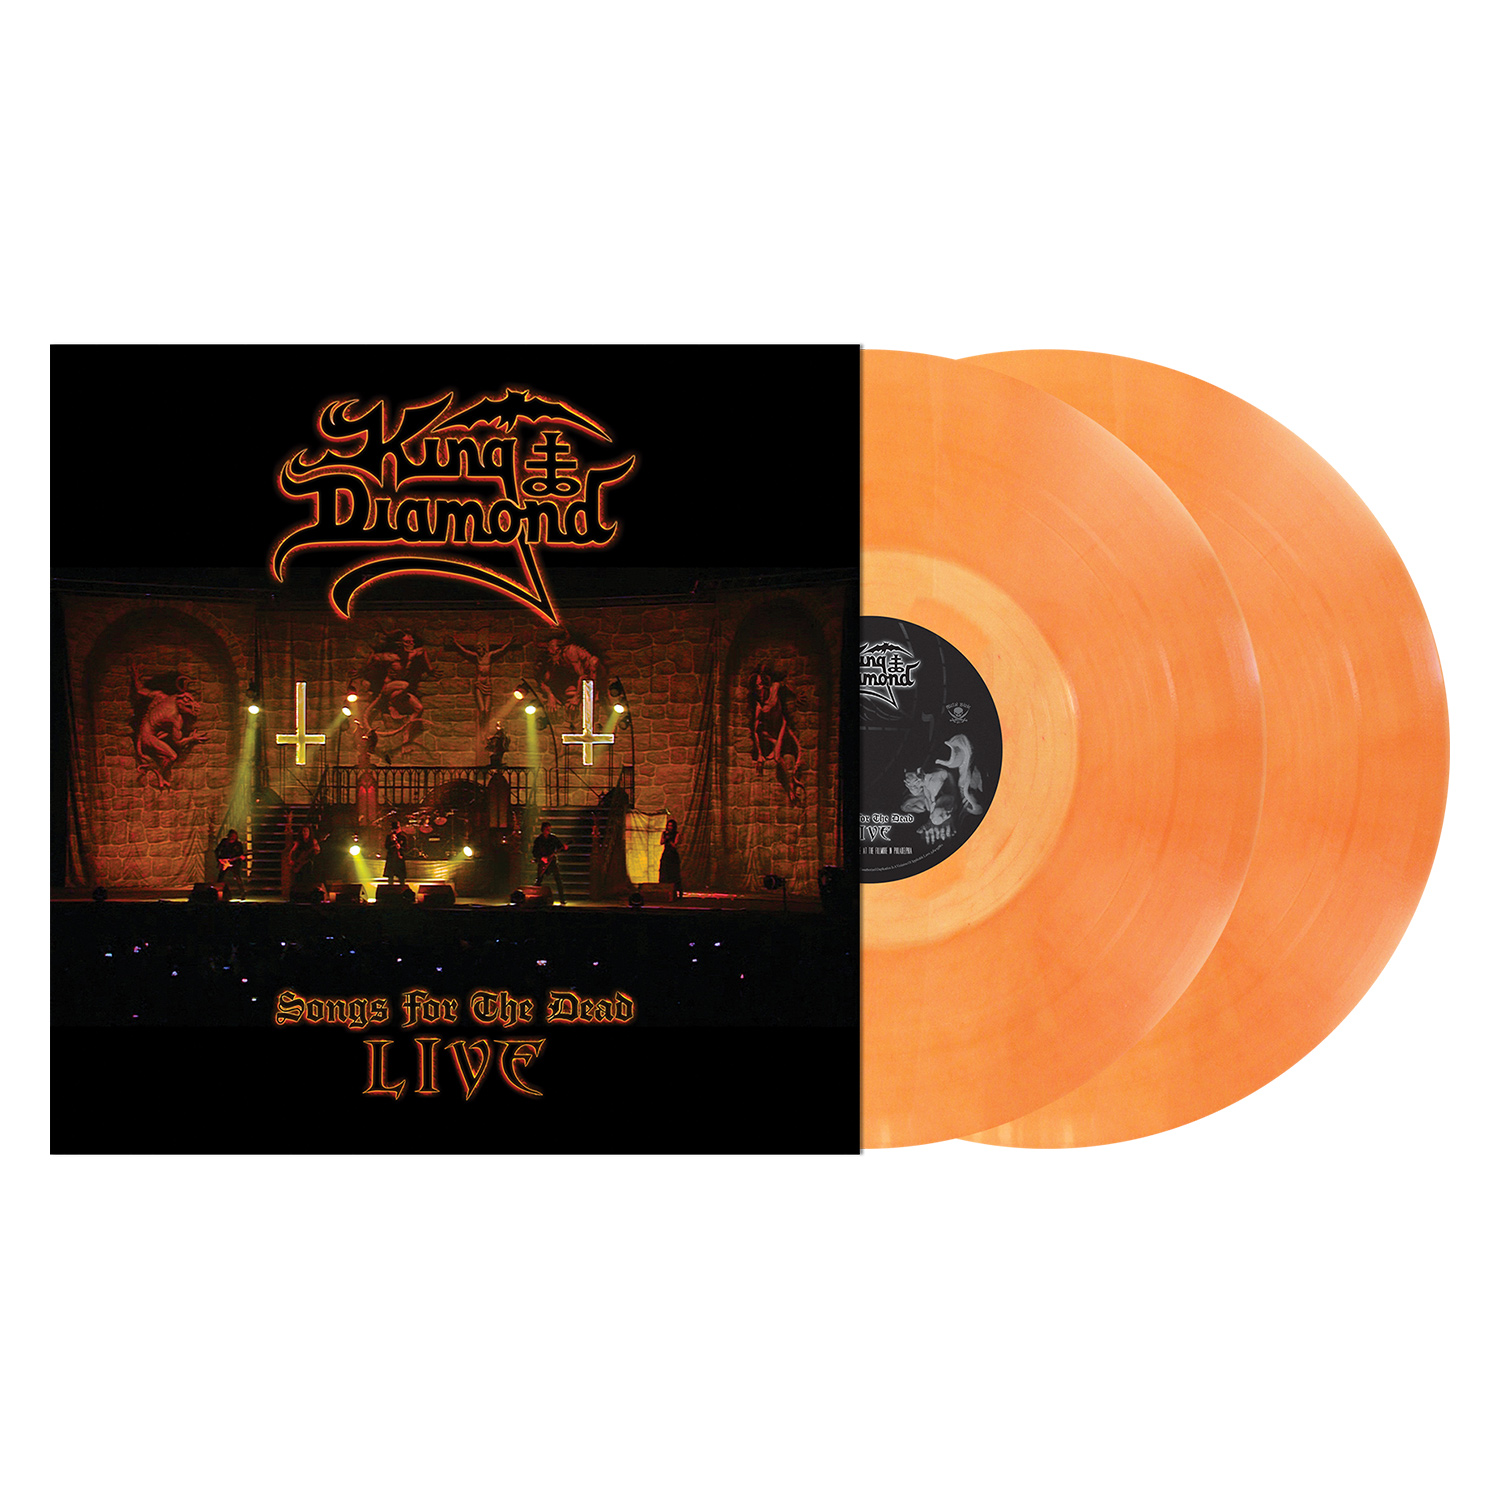 Songs for the Dead Live - LP Bundle - Pale Orange